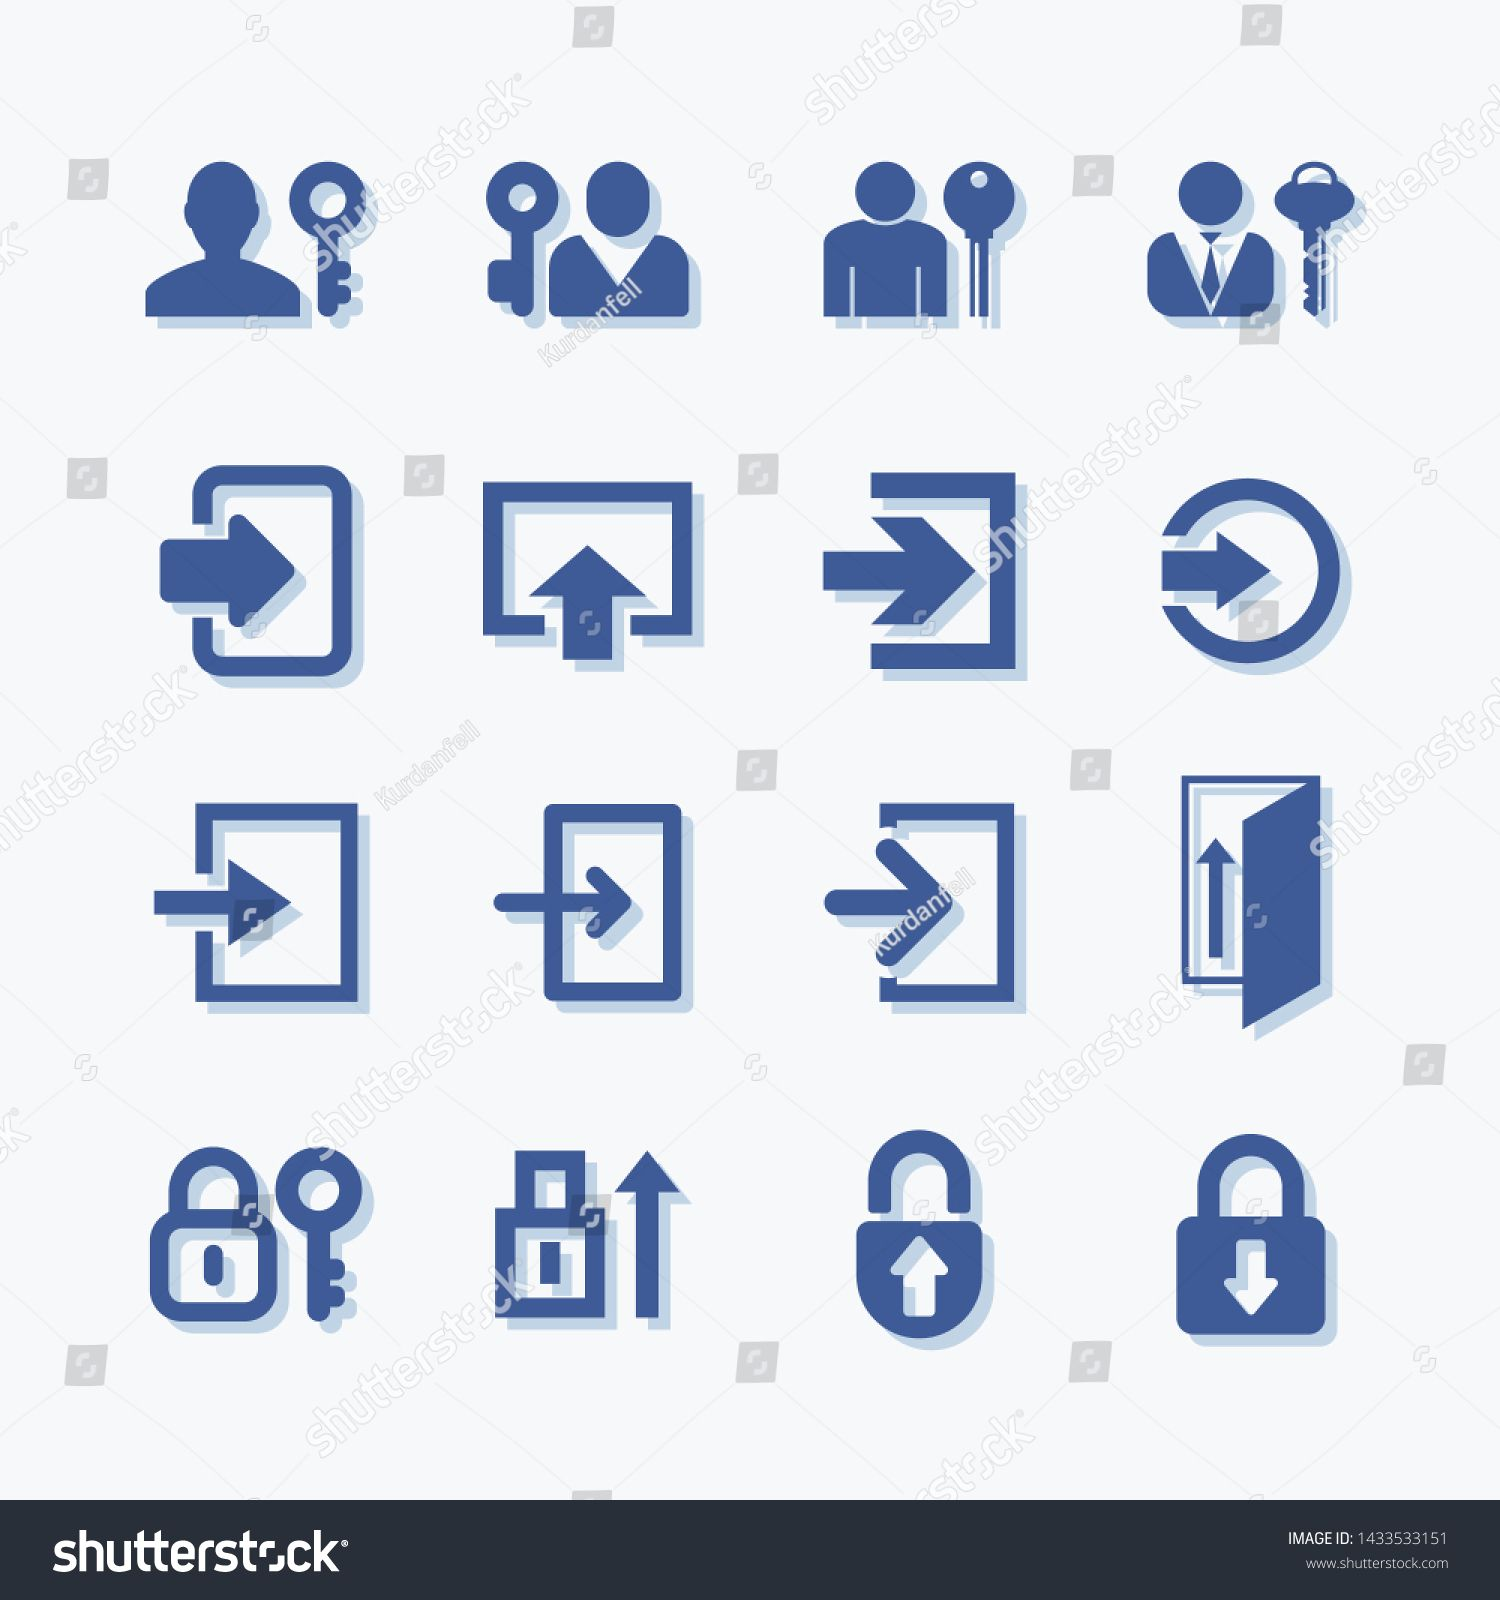 Login vector icons. User account sign symbol. Privacy